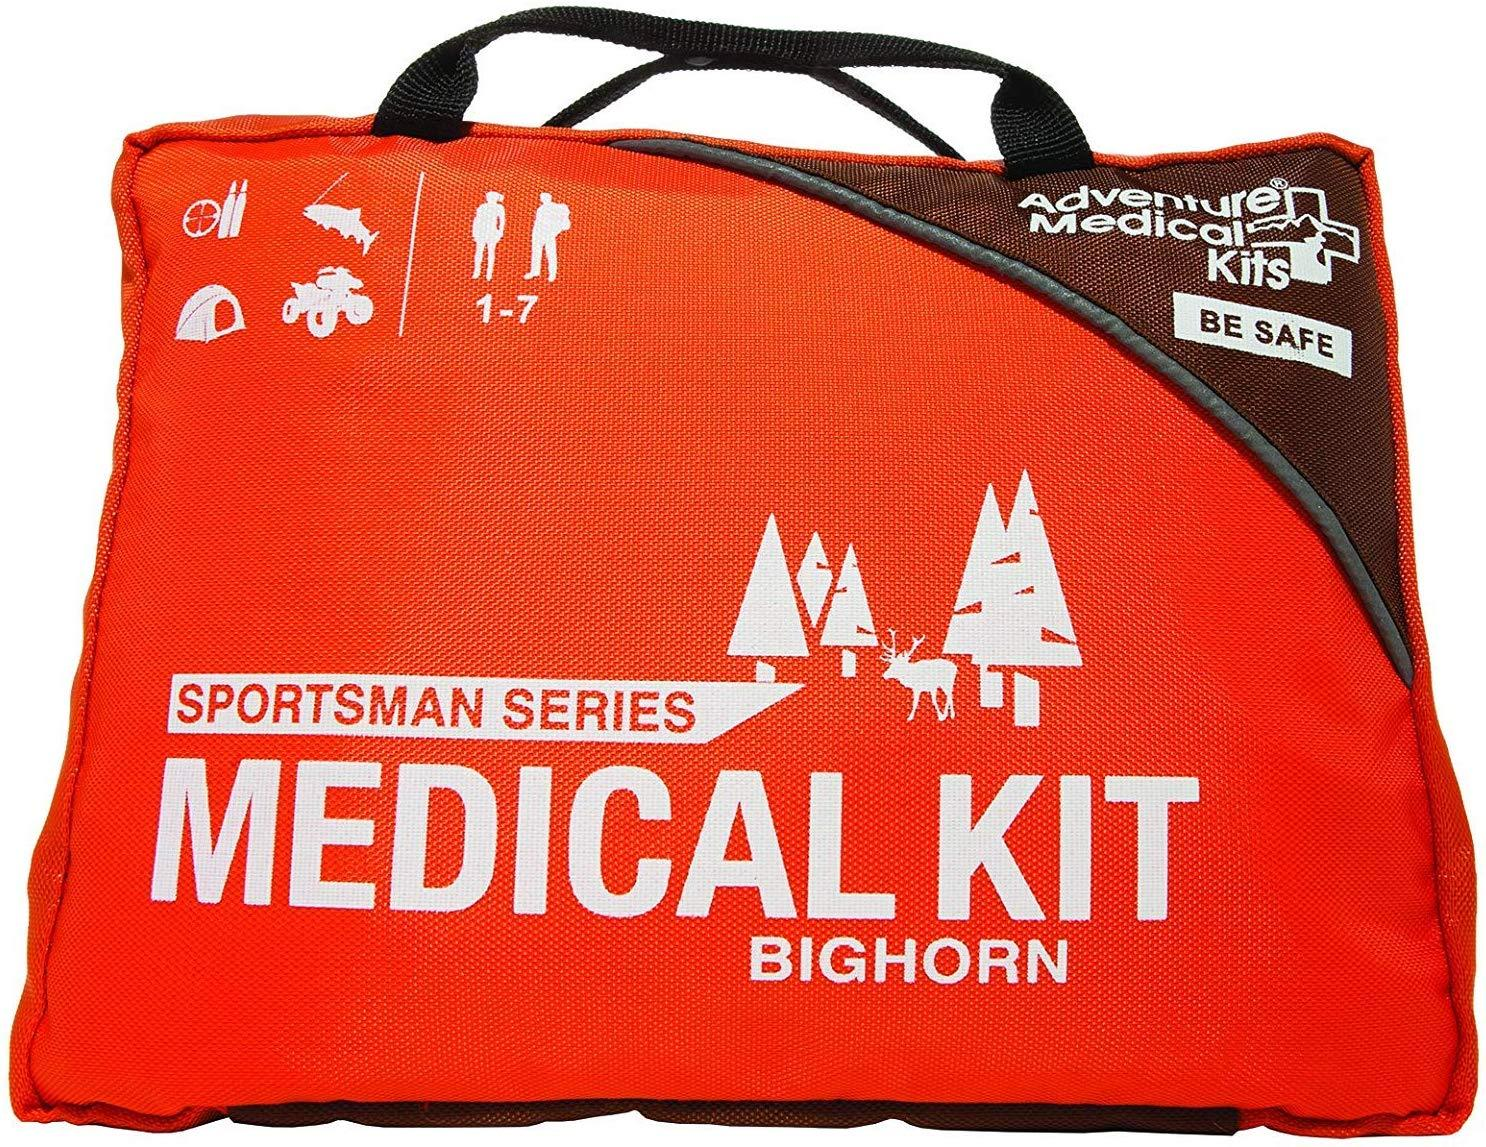 Adventure Medical Kits Sportsman Series Bighorn First Aid Kit